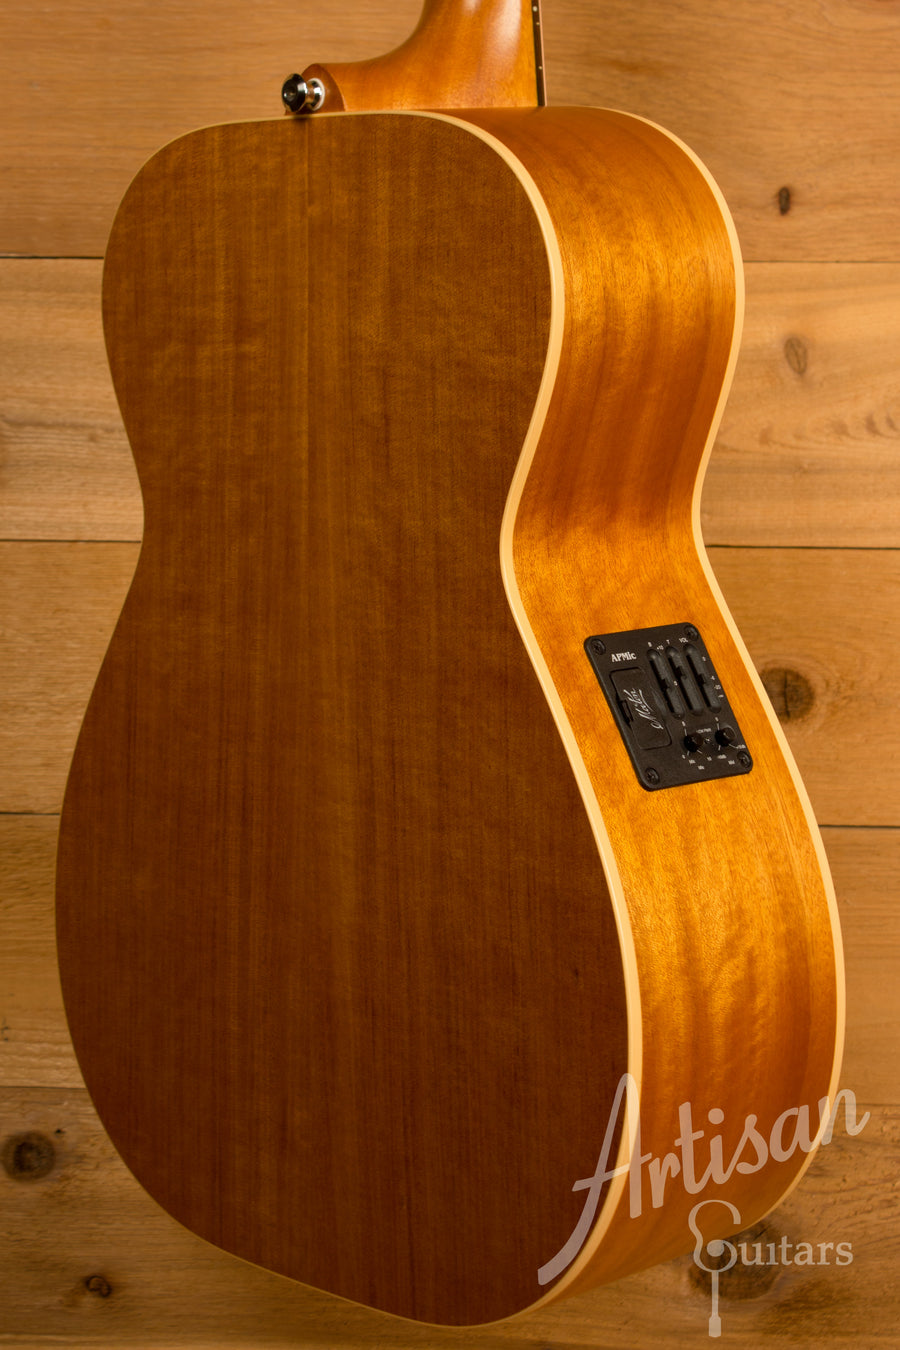 Maton EBG808TE Tommy Emmanuel Signature Sitka and Queensland Maple AP5 Mic Pre-Owned 2012 ID-11312 - Artisan Guitars